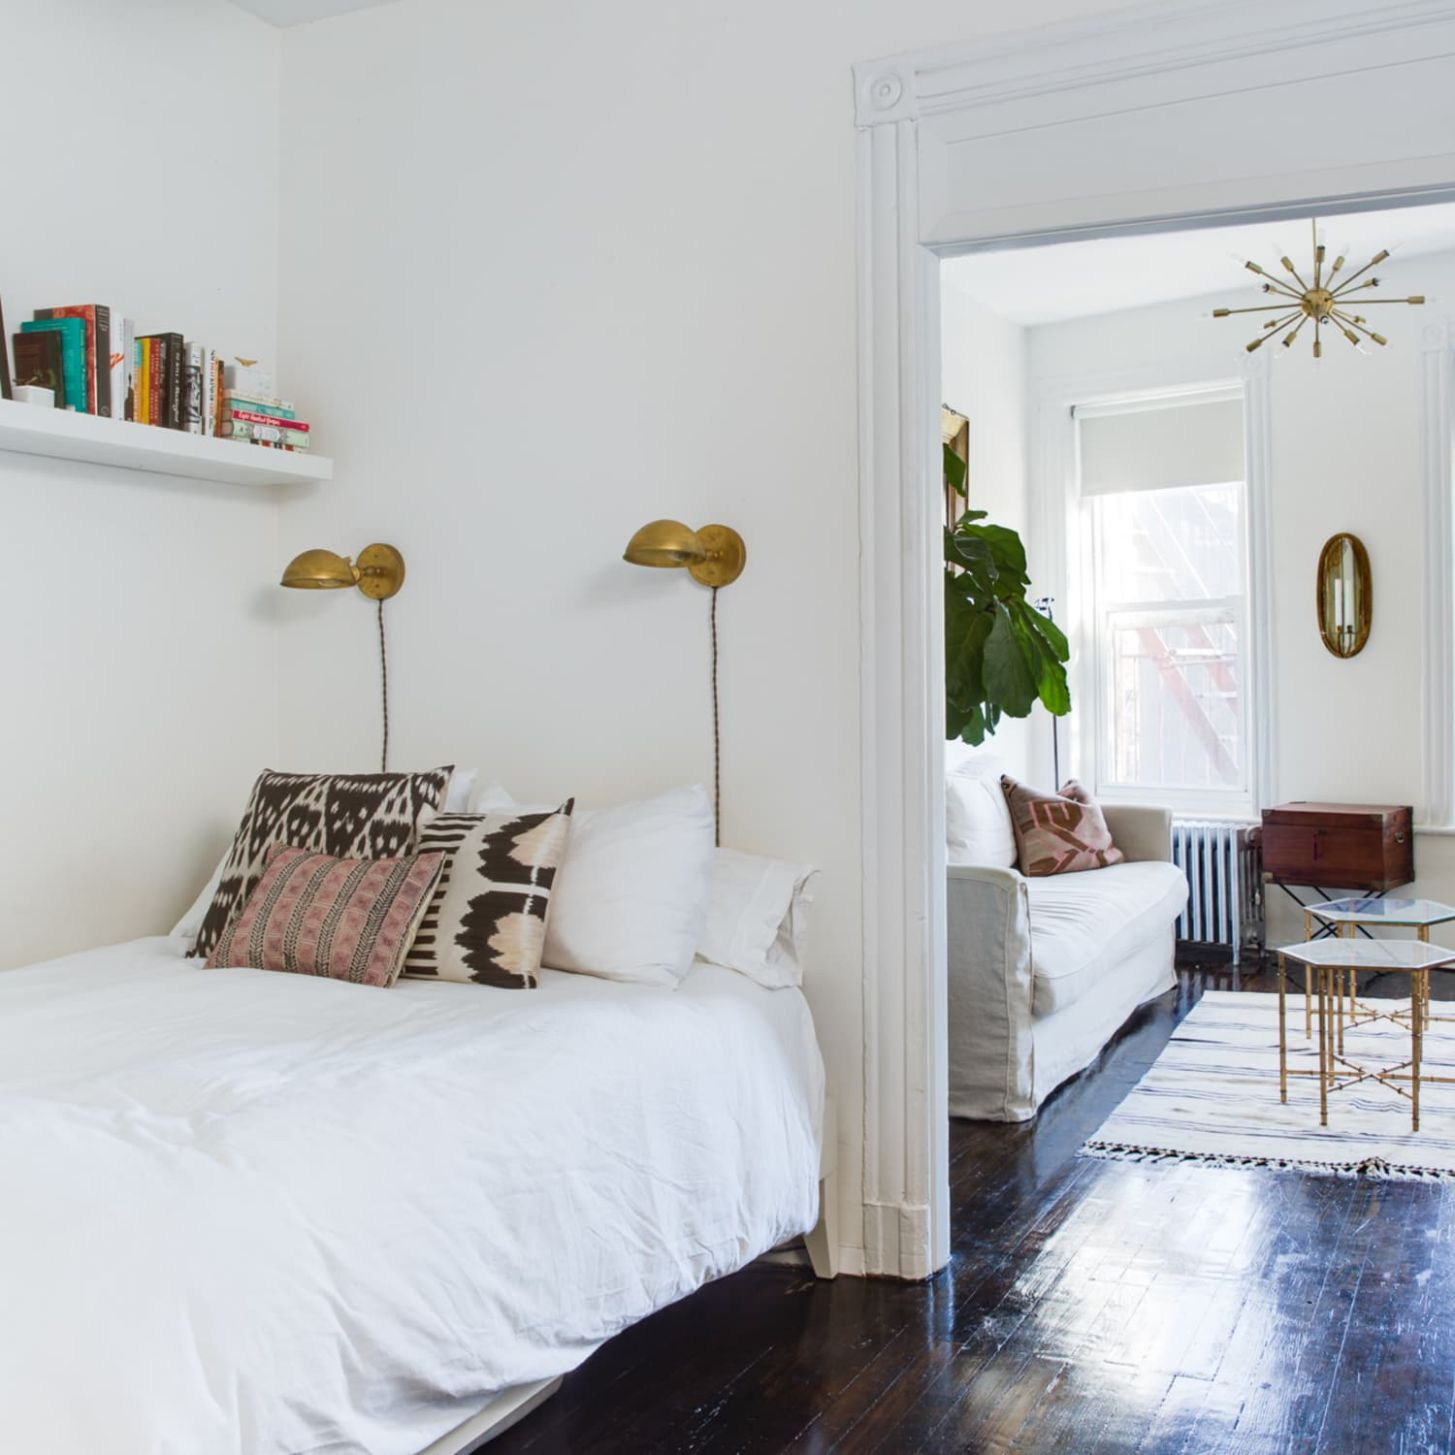 Best Small Bedroom Ideas - Design and Storage Tips | Apartment Therapy - small bedroom ideas 9 x 11